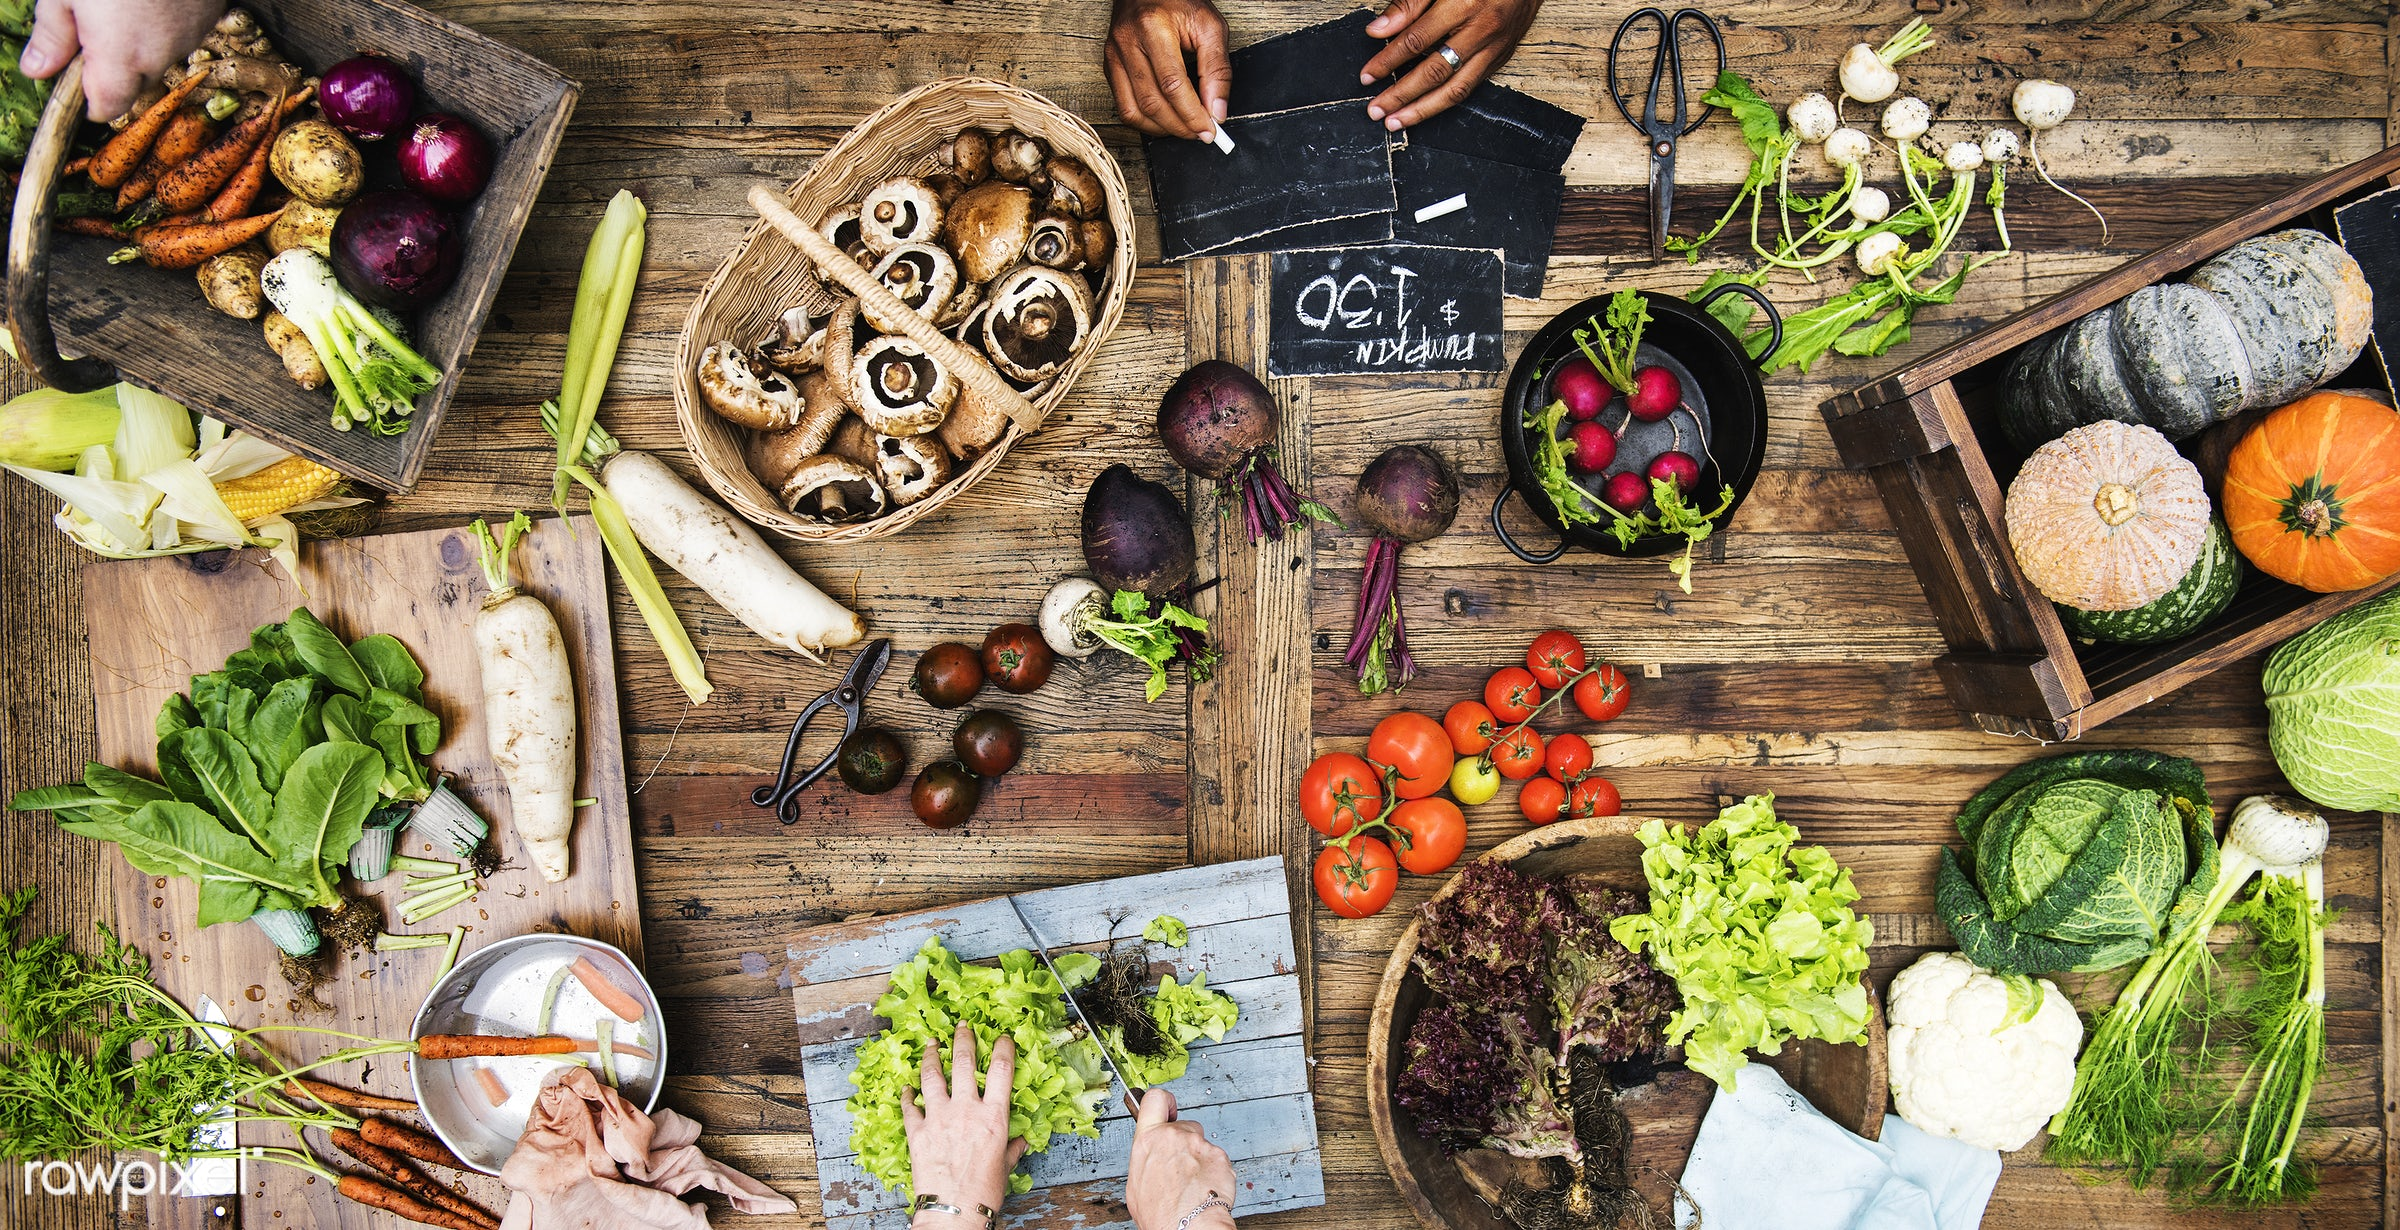 raw, diverse, herbs, ingredients, farm, nature, farmer, fresh, hands, aerial view, products, agriculture, variety, organic,...